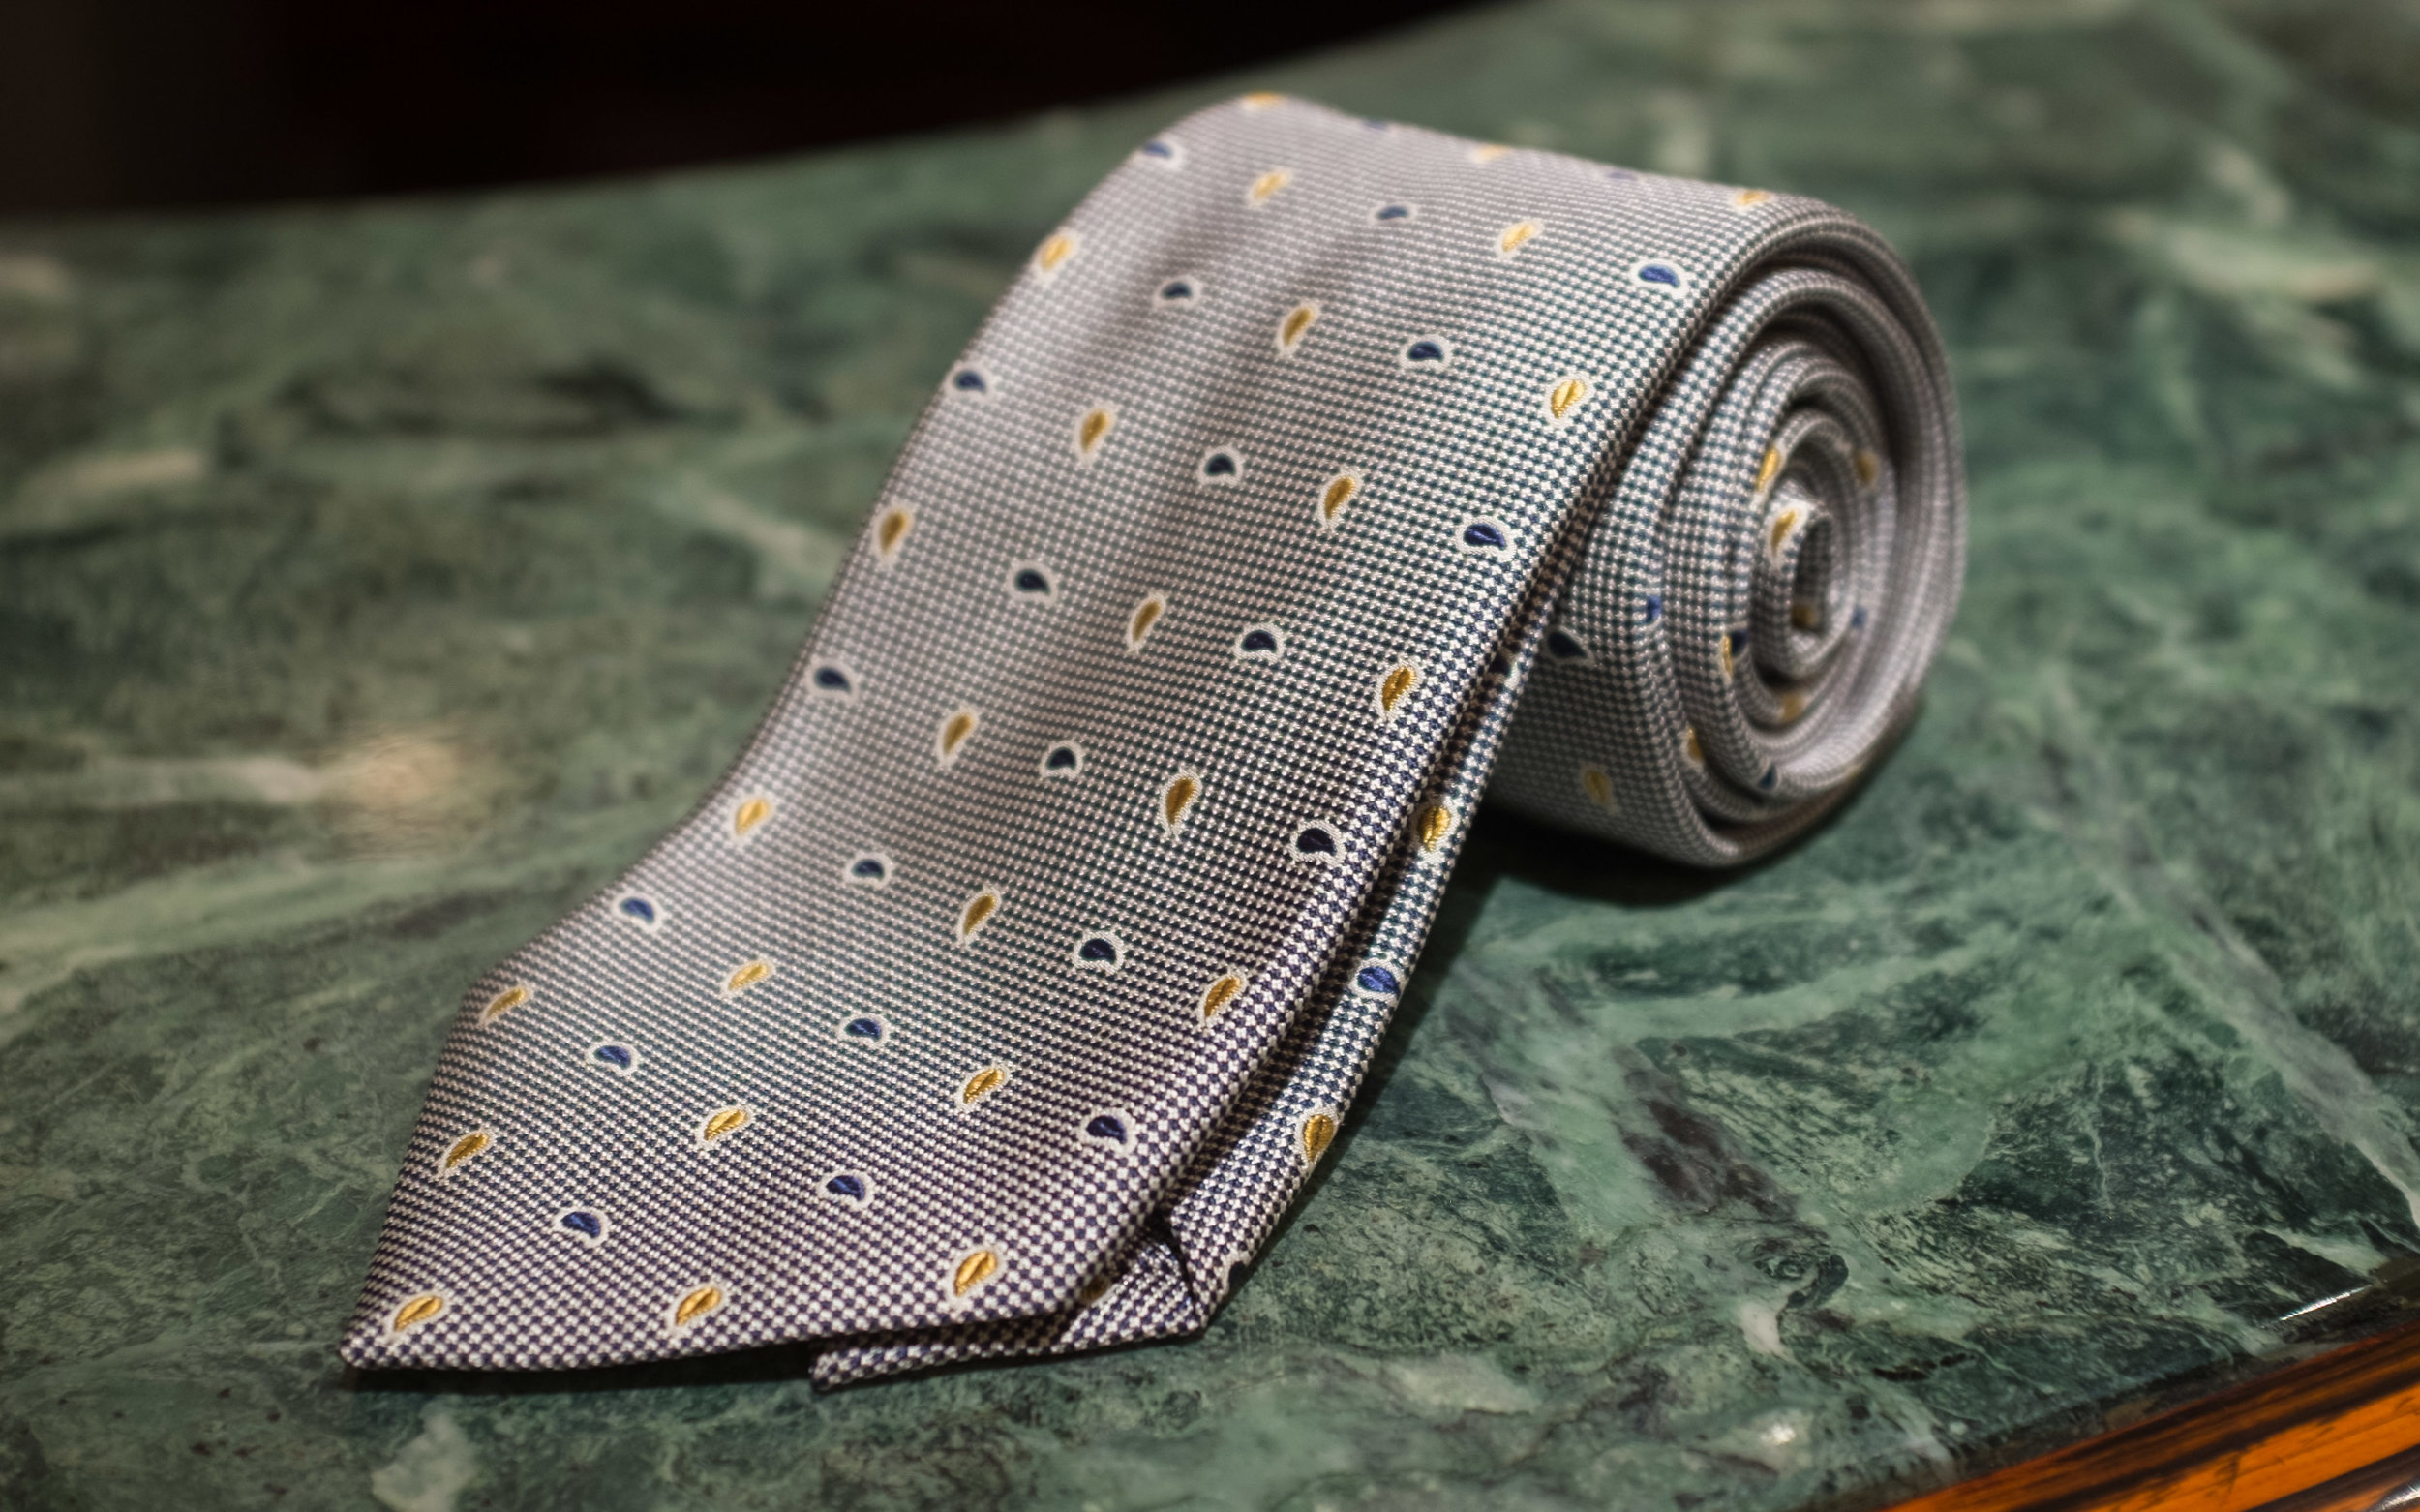 Macclesfield Woven Silk Paisley  - The paisley elements here have been abstracted to their geometric essence and reduced in scale to be subtle decorations on a woven black and silver field, making this is a very dressy tie intended to be worn with suits.